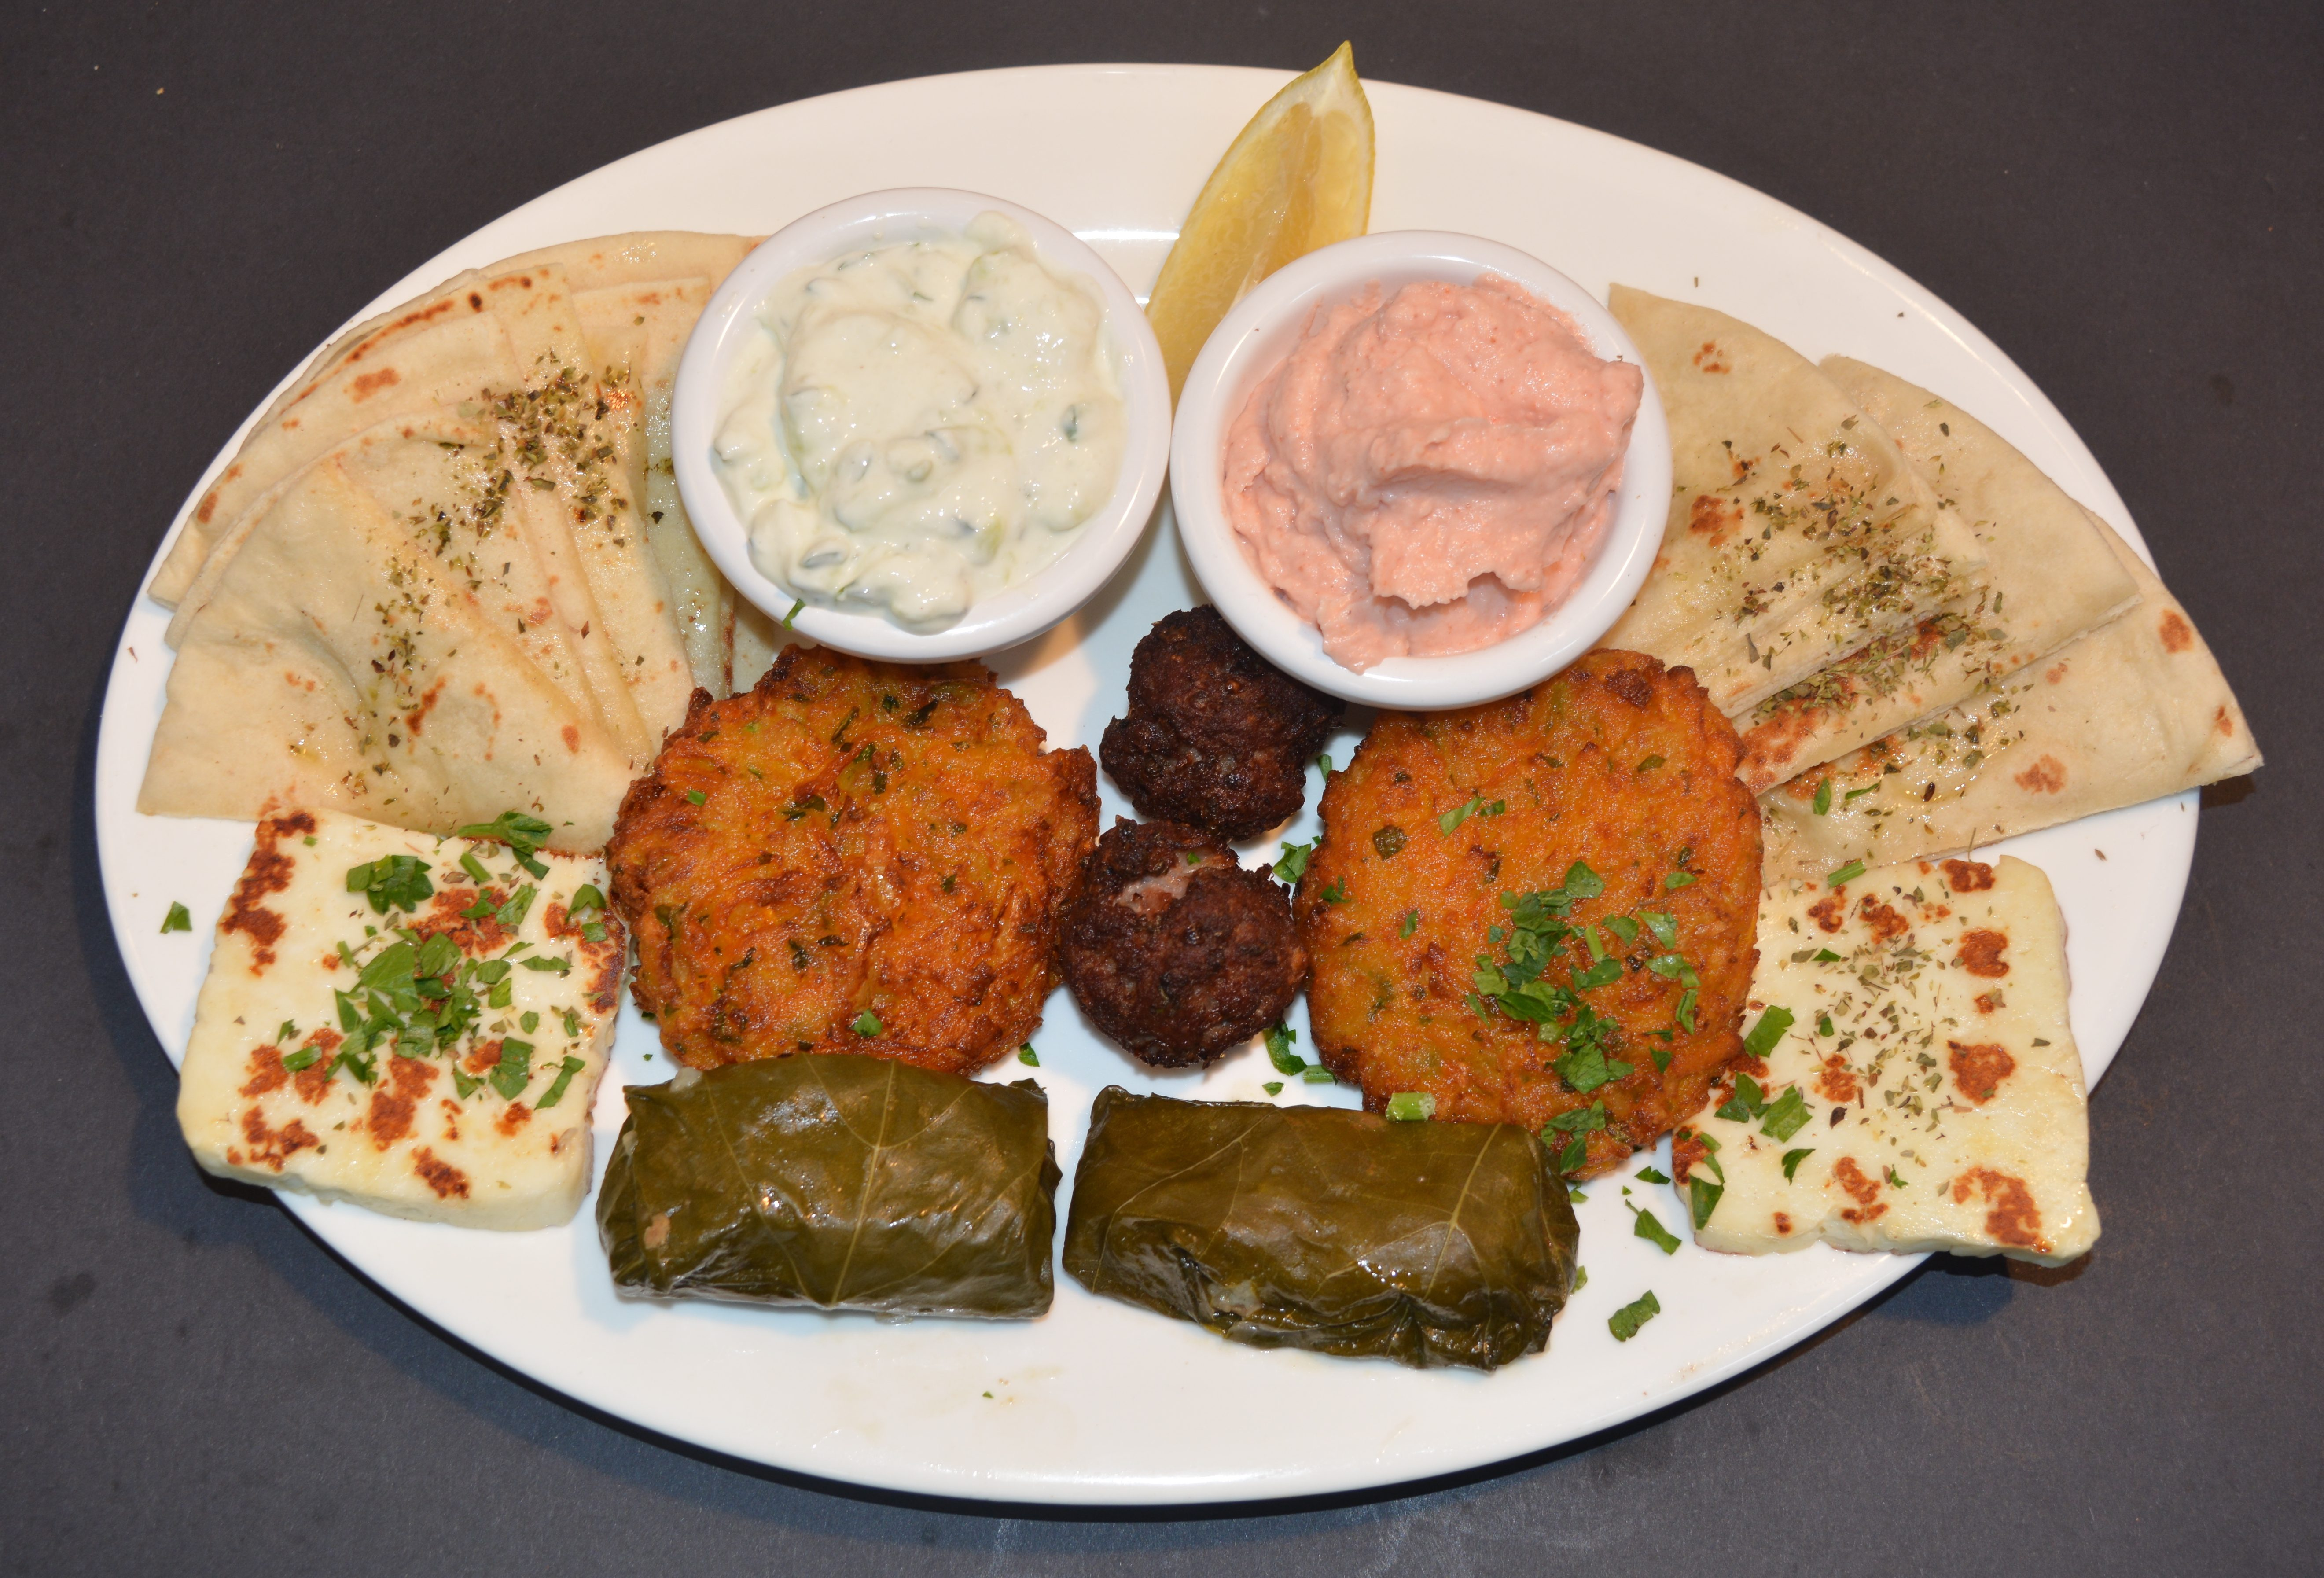 Meze Plate for 2 people, includes taramosalata, tzatziki, pita bread, keftedes (meatballs), fried pumkin patties, dolmades, grilled haloumi cheese.